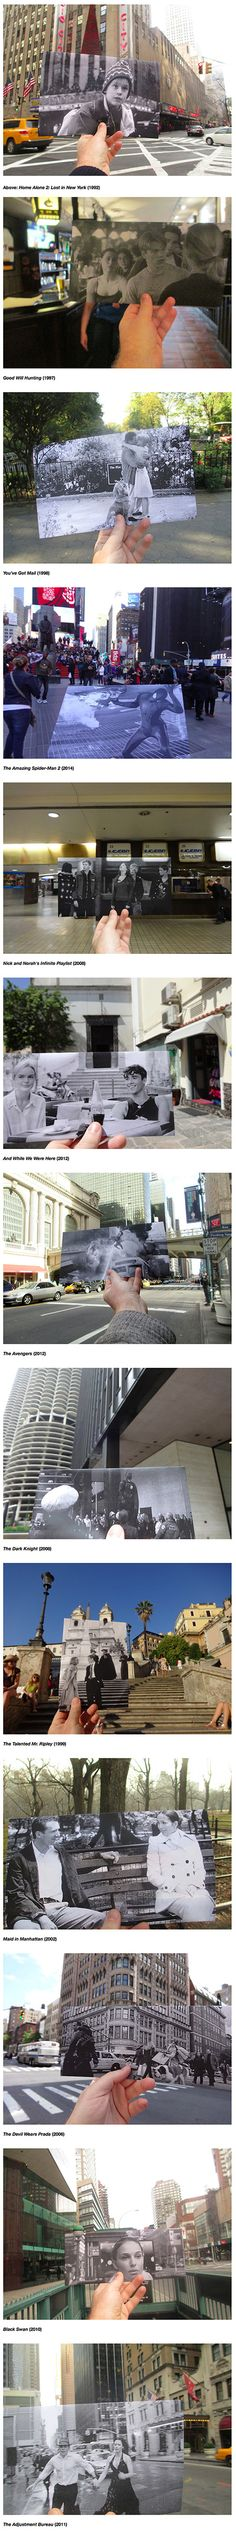 Canadian photographer Christopher Moloney brings the magic of cinema to life with FILMography, an ongoing art project that matches scenes from movies with their real-life, present-day locations. After printing out a black-and-white still from a film, Moloney holds up the print and snaps a photo of it aligned perfectly with the actual building, street, or or landmark behind it.